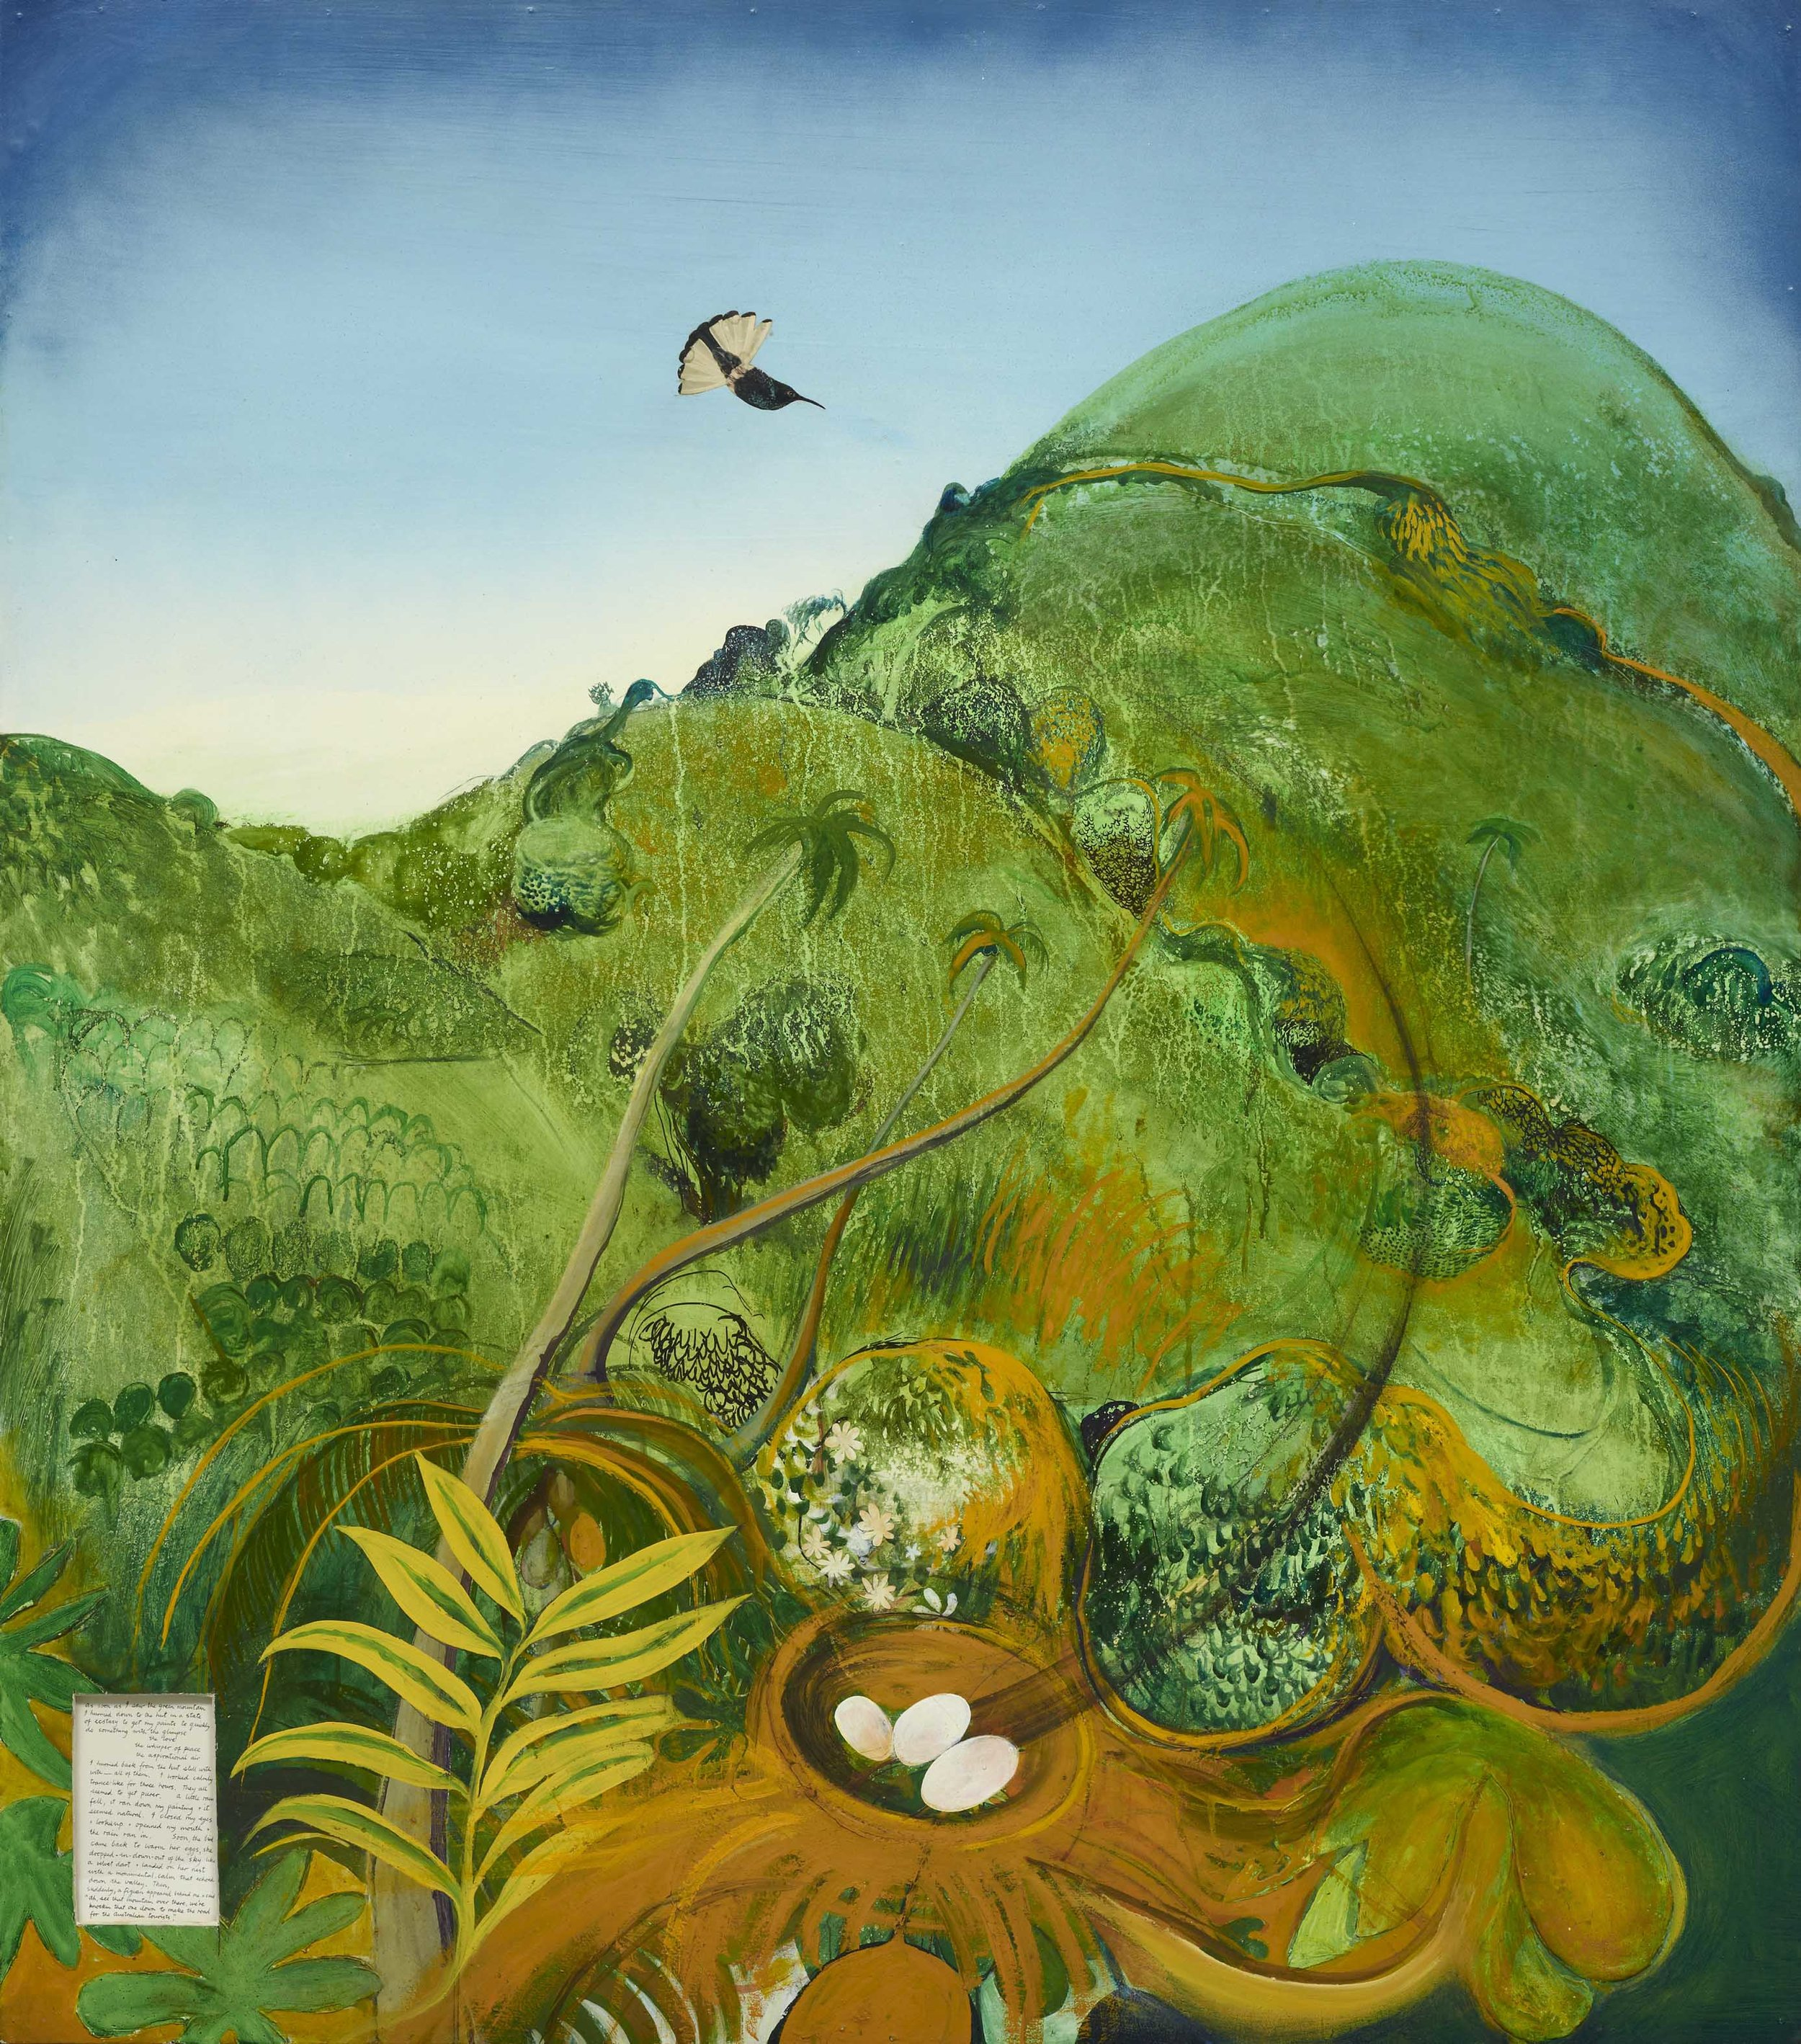 Brett Whiteley,  The green mountain (Fiji)  1969, oil, collage on cardboard, 137 x 122 cm